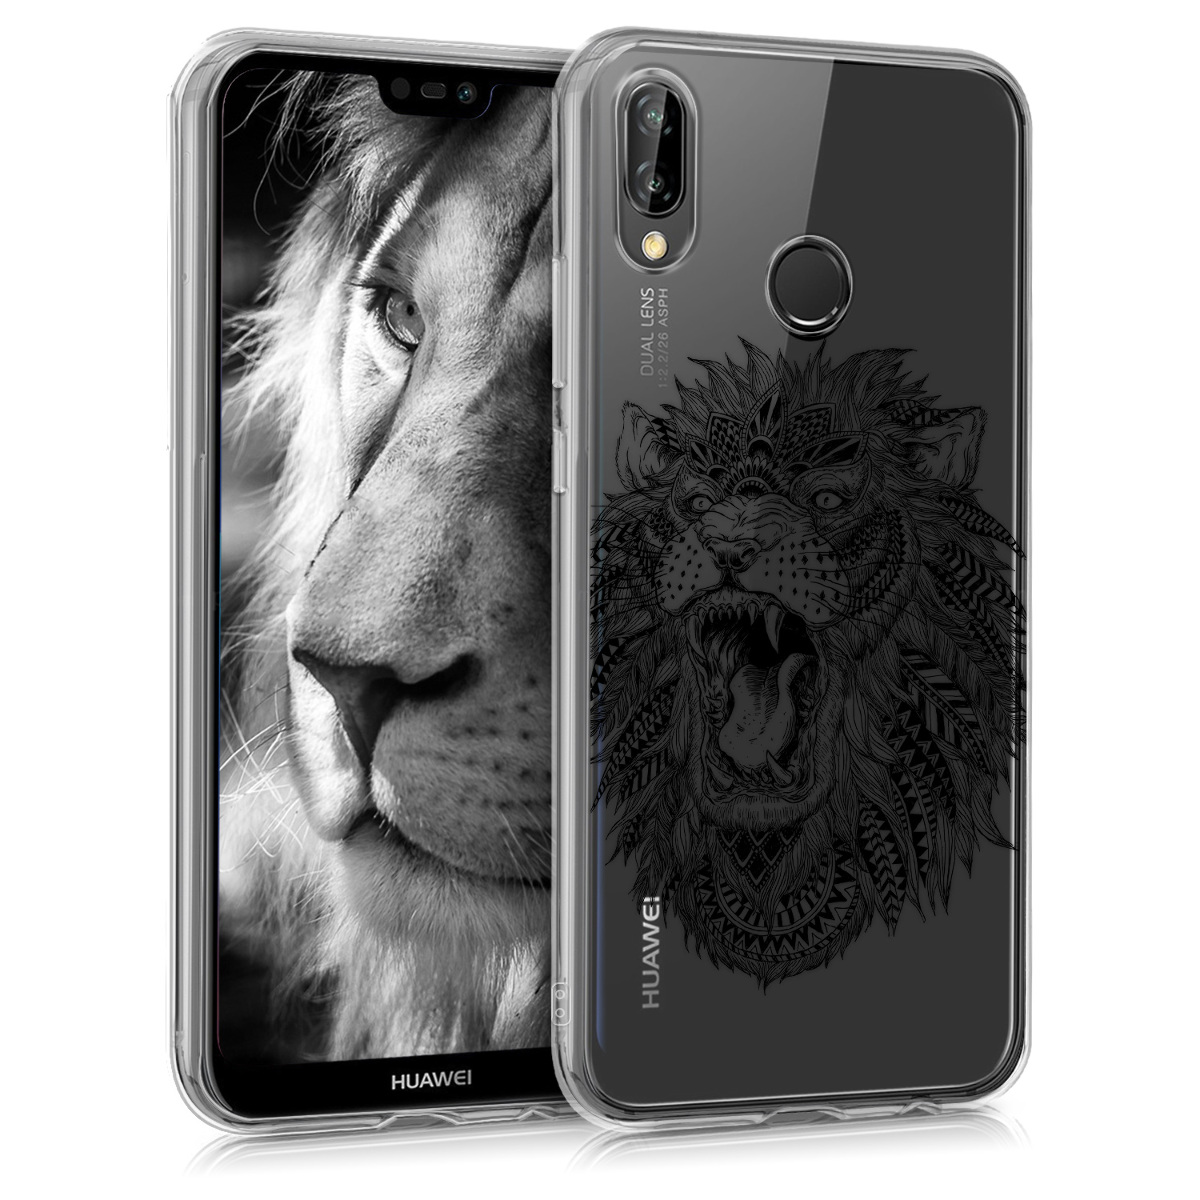 979de2932 kwmobile TPU Case for Huawei P20 Lite - Soft TPU Silicone Cover - Crystal  Clear Back Case IMD Design - Black / Transparent. ‹ › ‹ › ‹ › ‹ ›